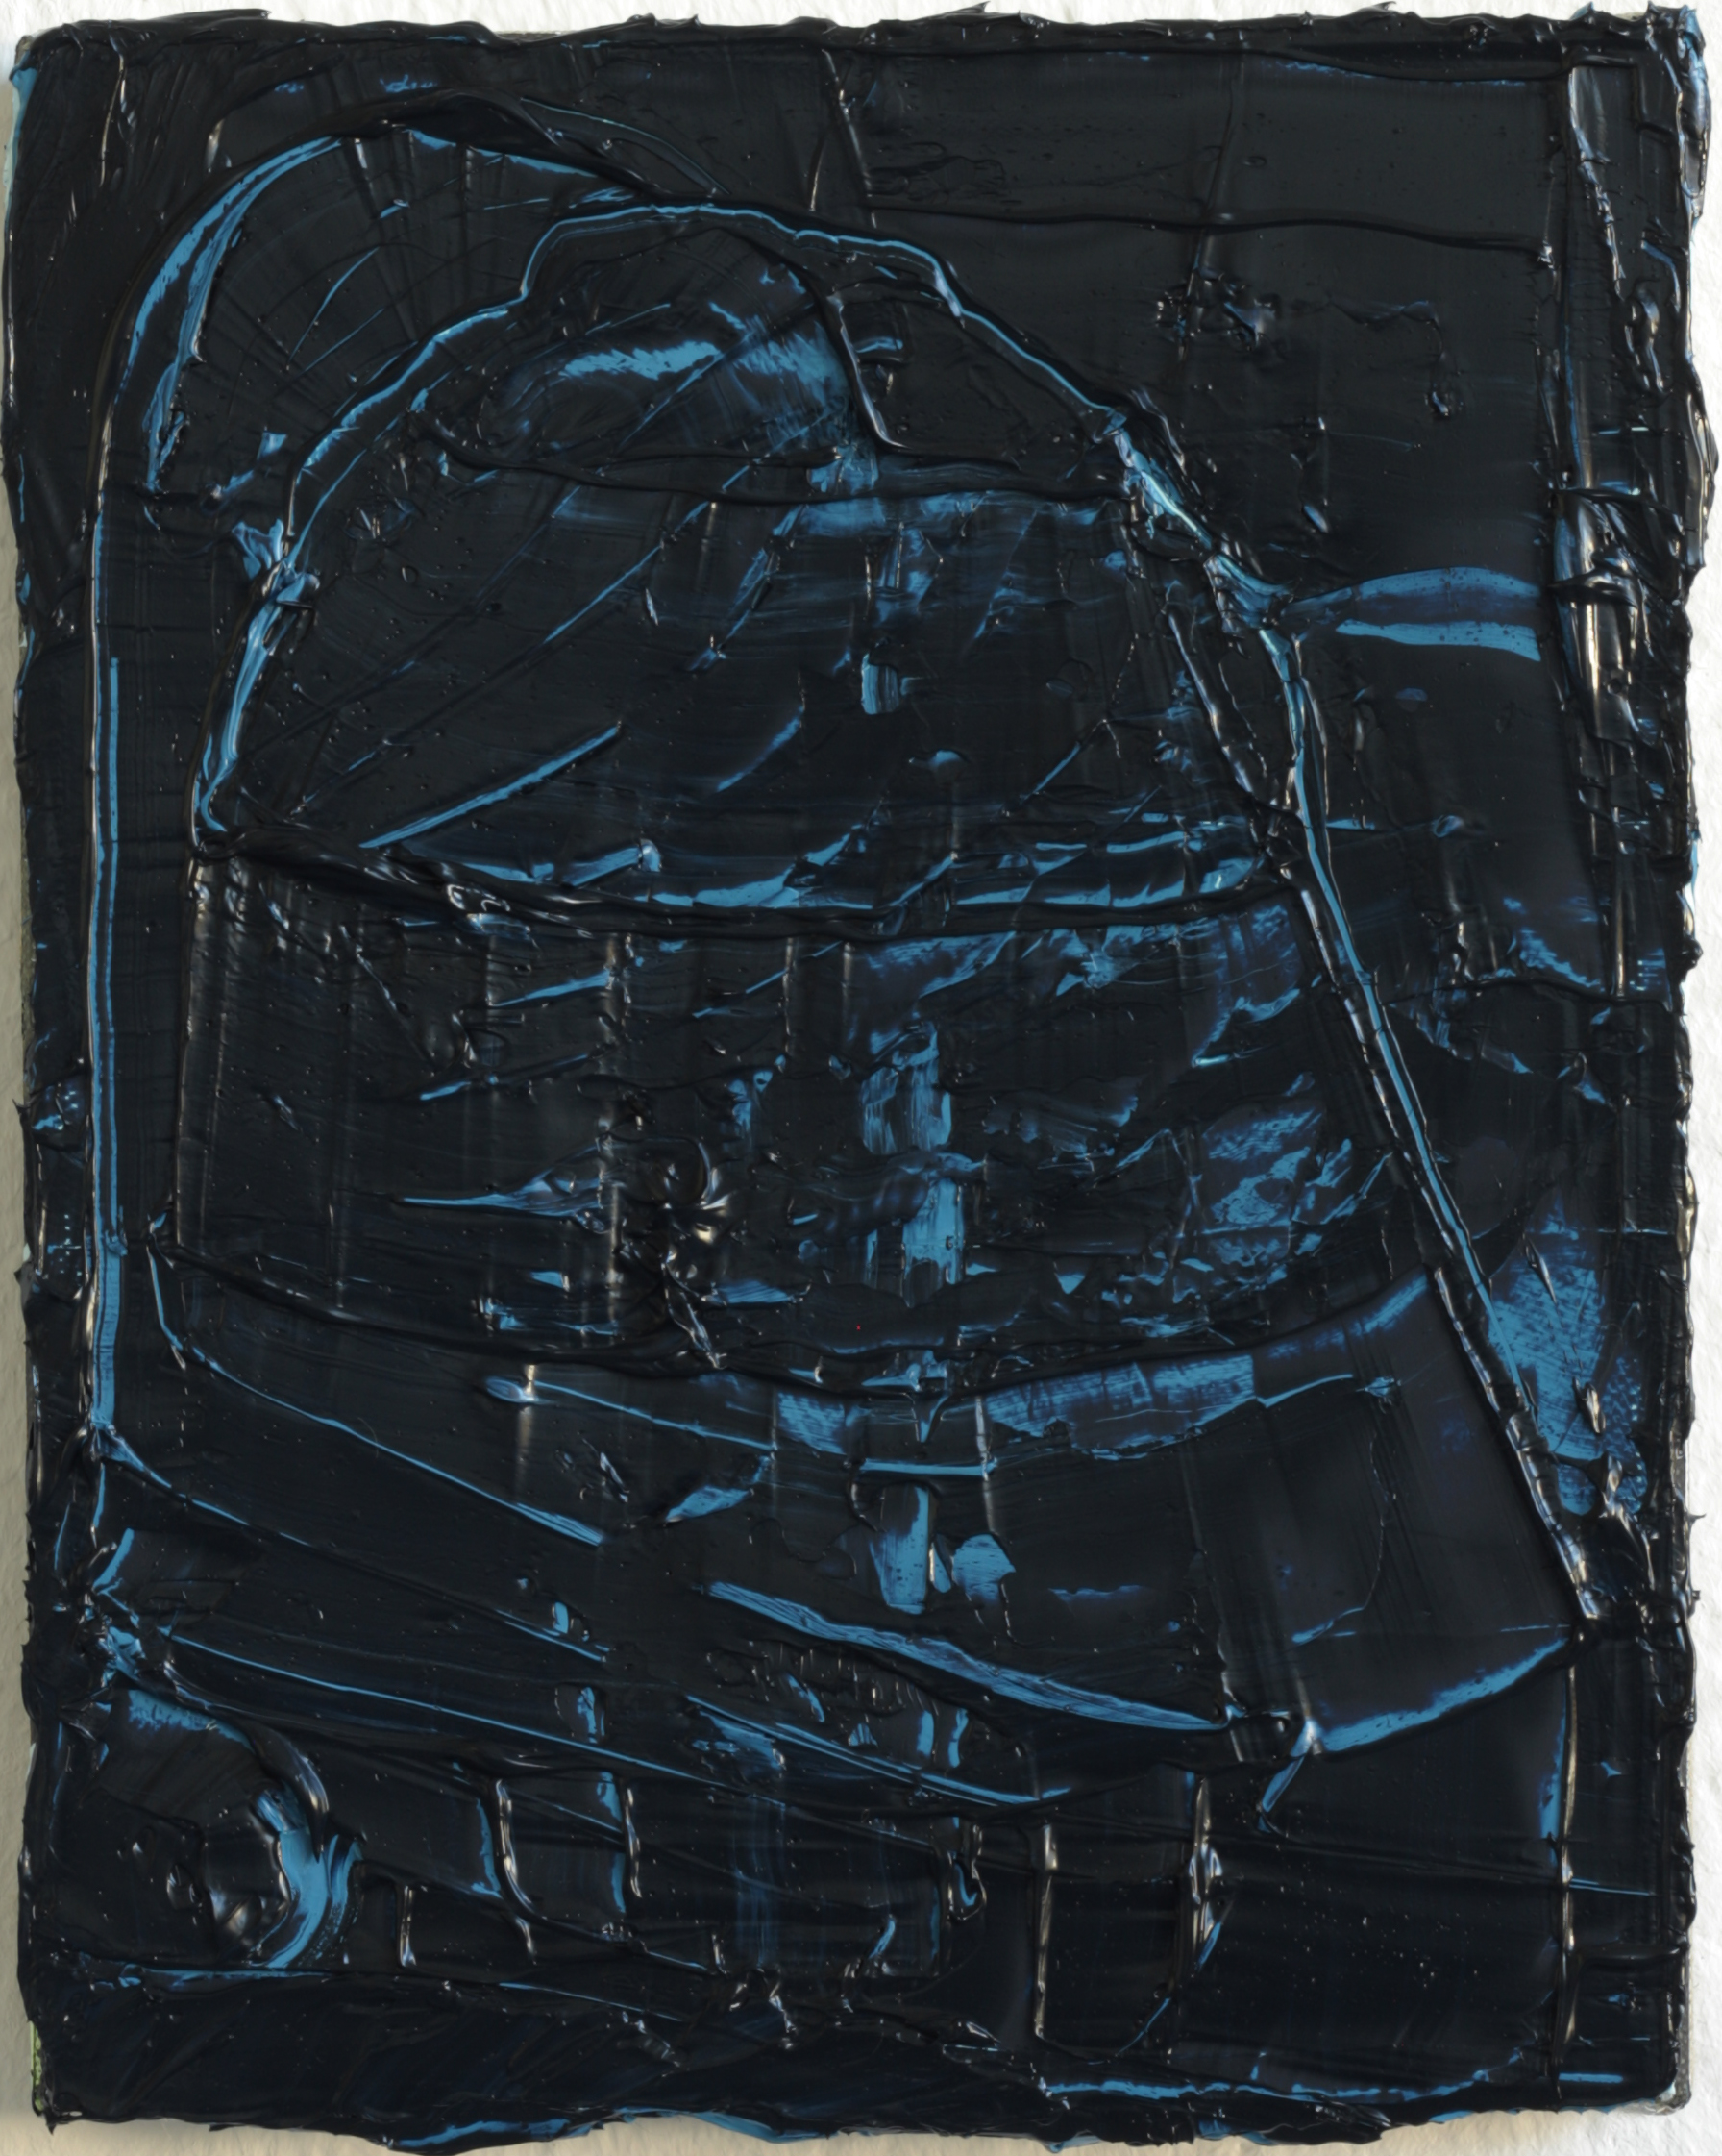 felix_becker_untitled (helmet)_2018_oil on linen_25x20cm